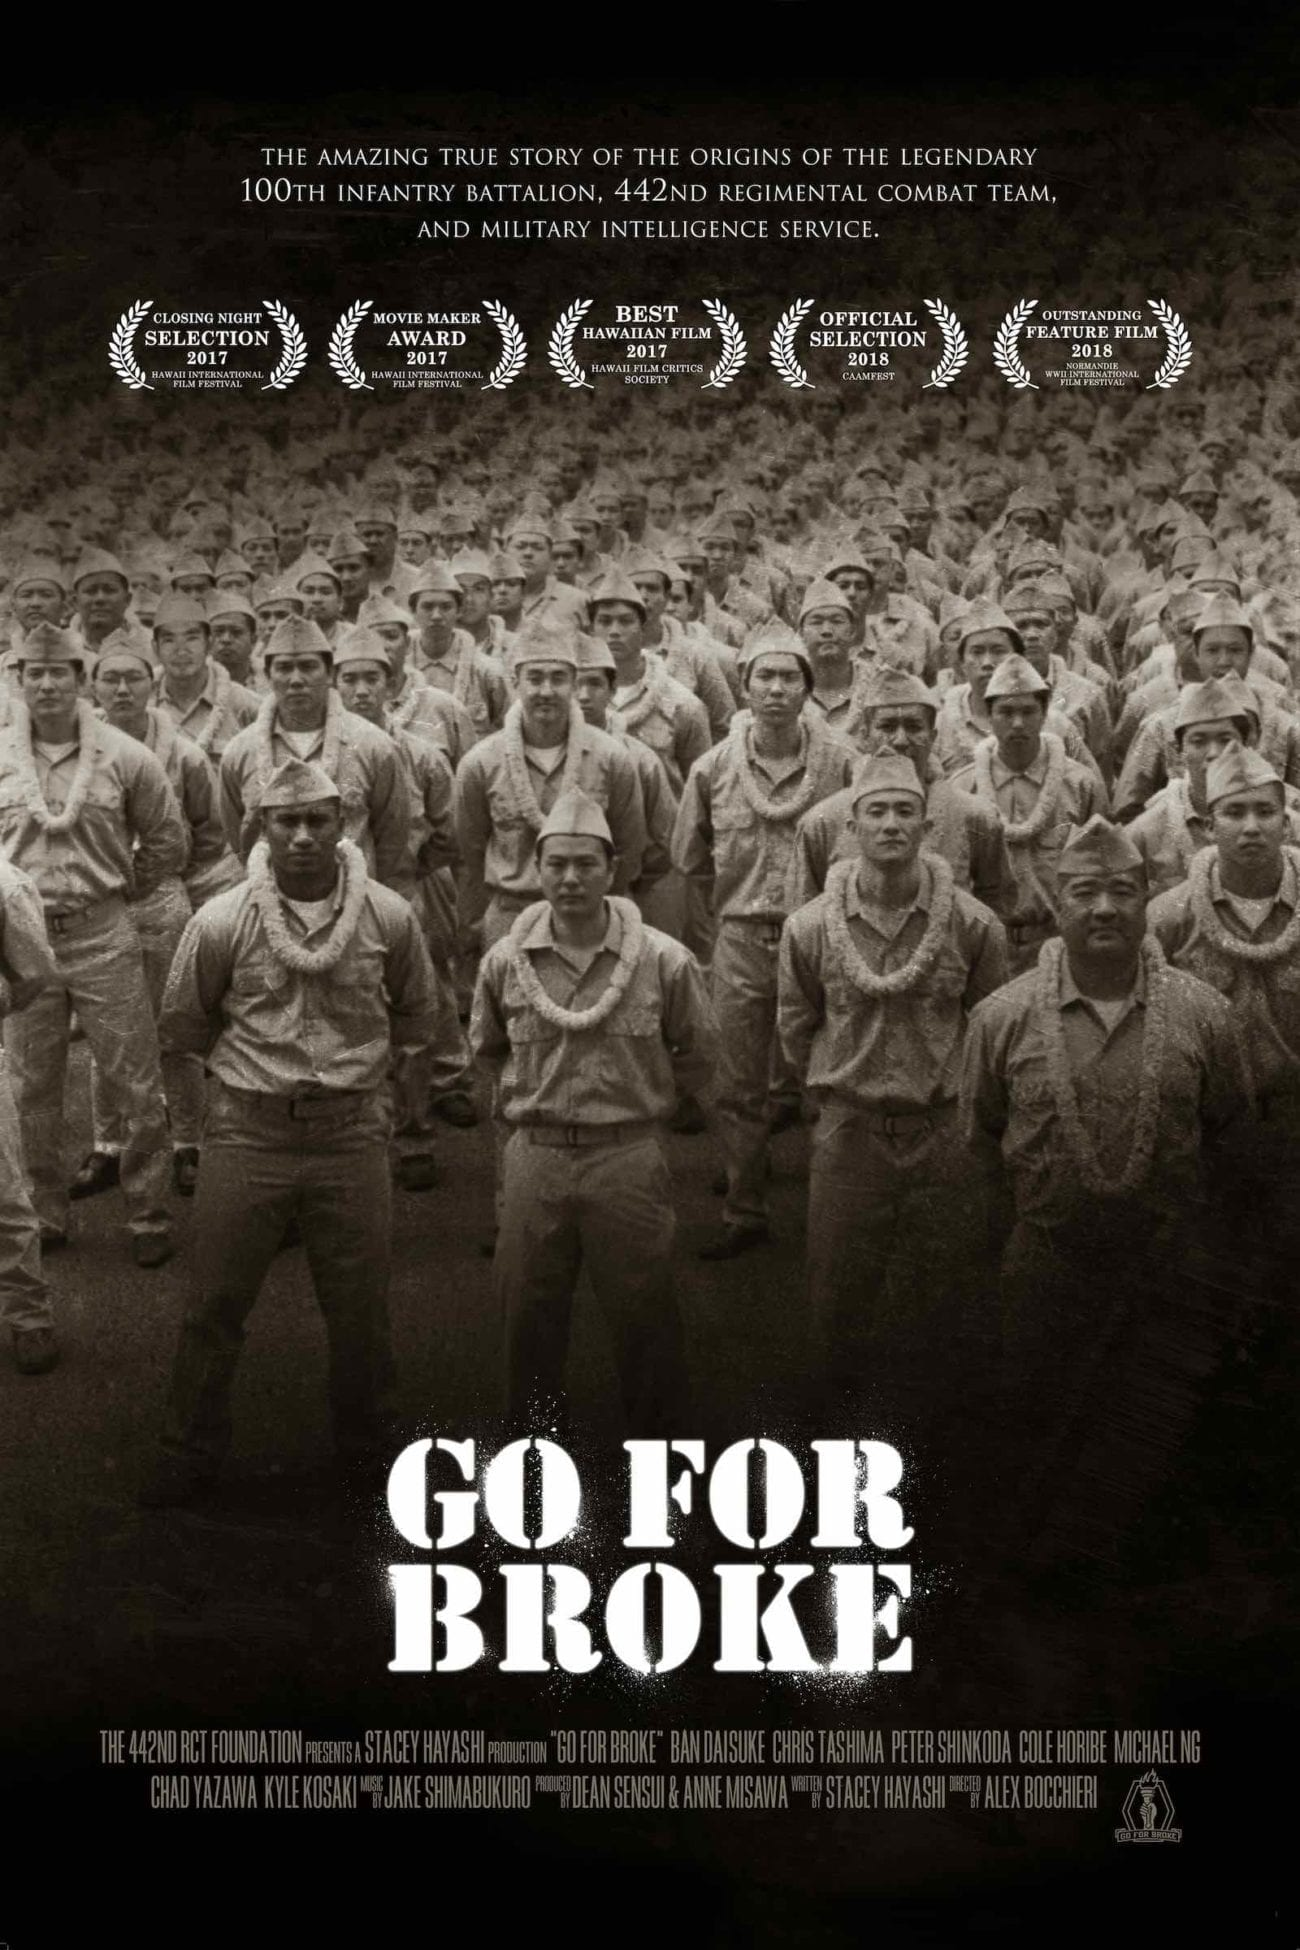 'Go for Broke: An Origin Story' chronicles the story of Hawaii's 100th Infantry Battalion, 442nd Regimental Combat Team, formed in 1941.